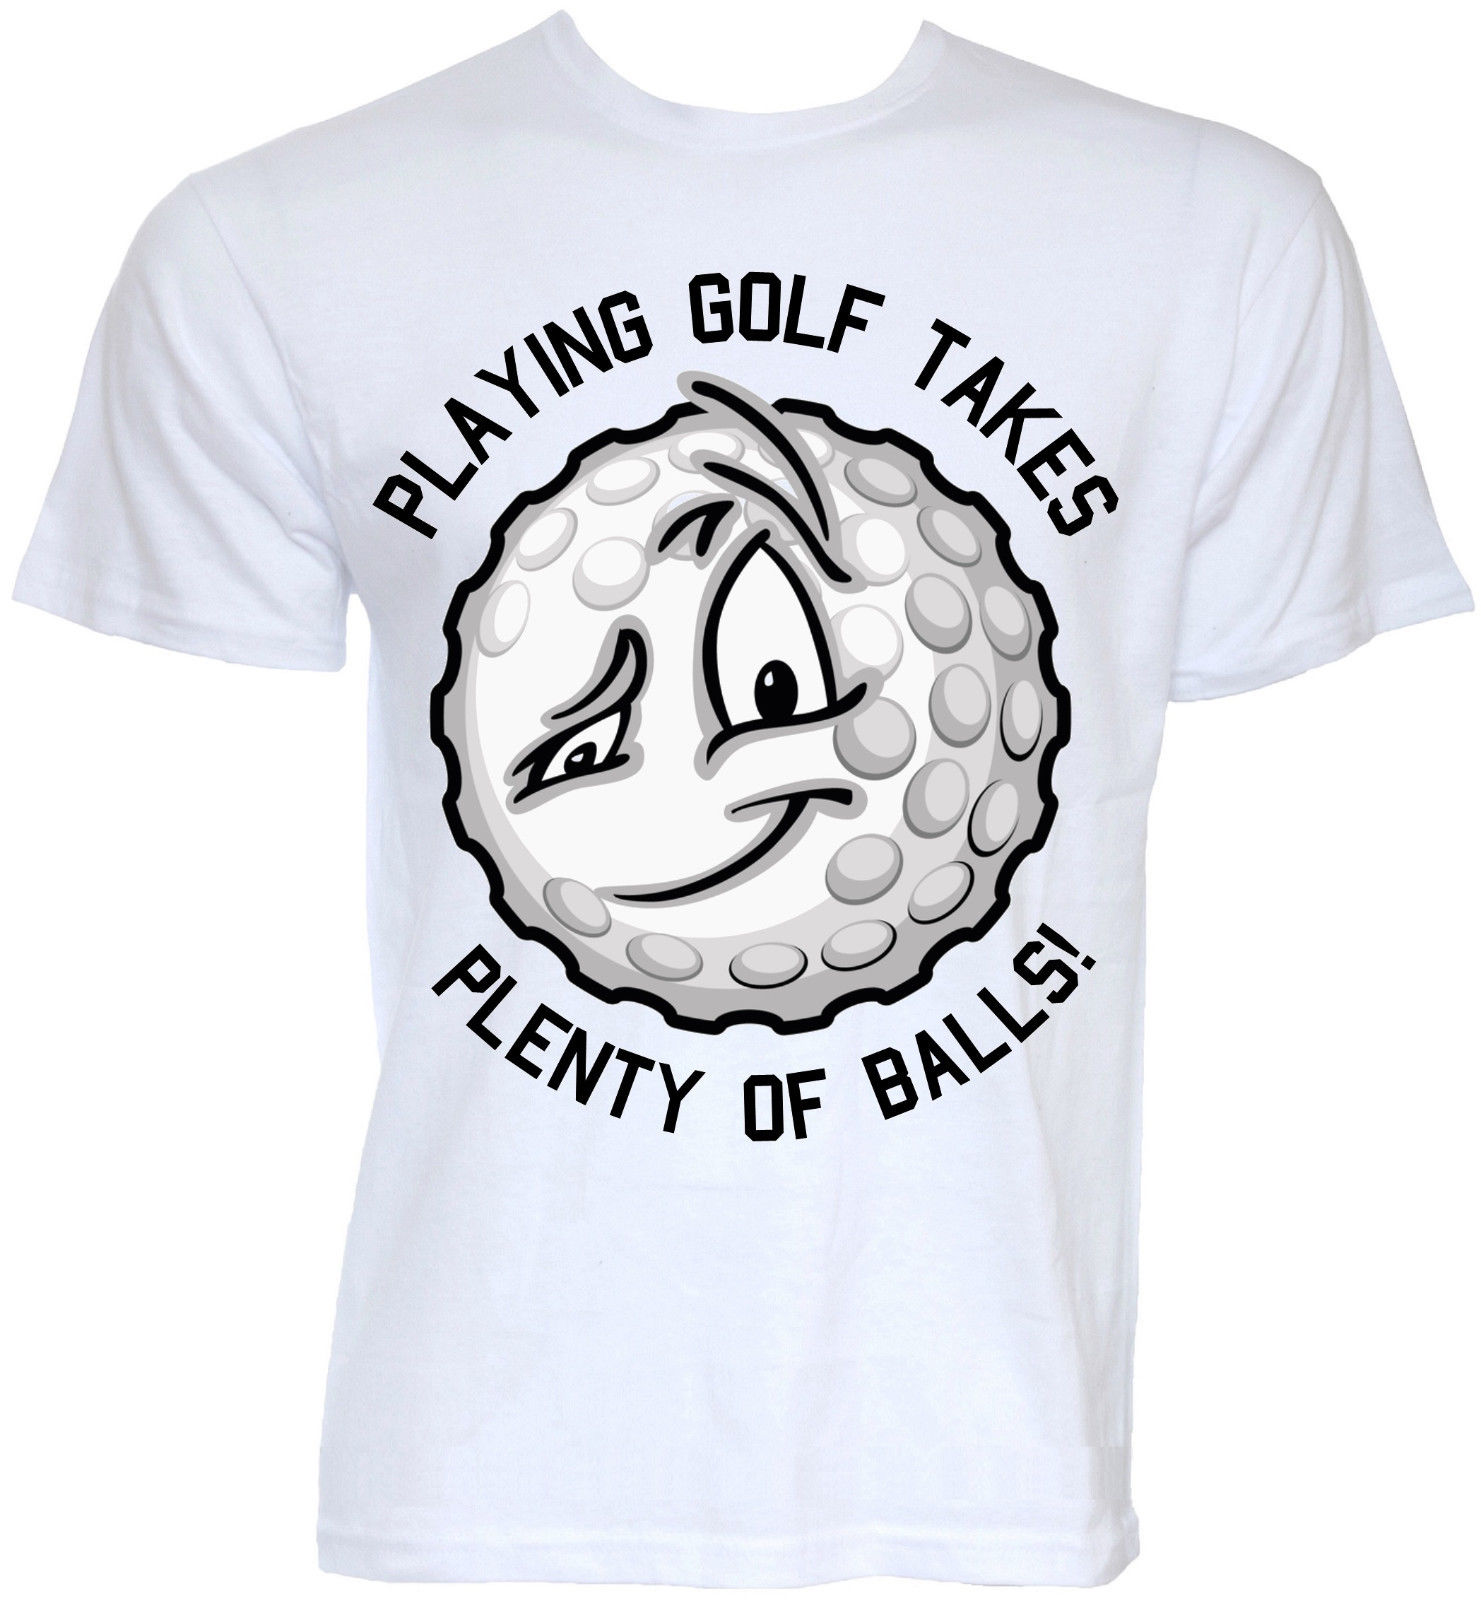 MENS FUNNY NOVELTY GOLFER BALL SLOGAN GOLFER GOLFING JOKE RUDE T-SHIRTS FUN GIFTS Mens T Shirts Fashion 2017 Clothing